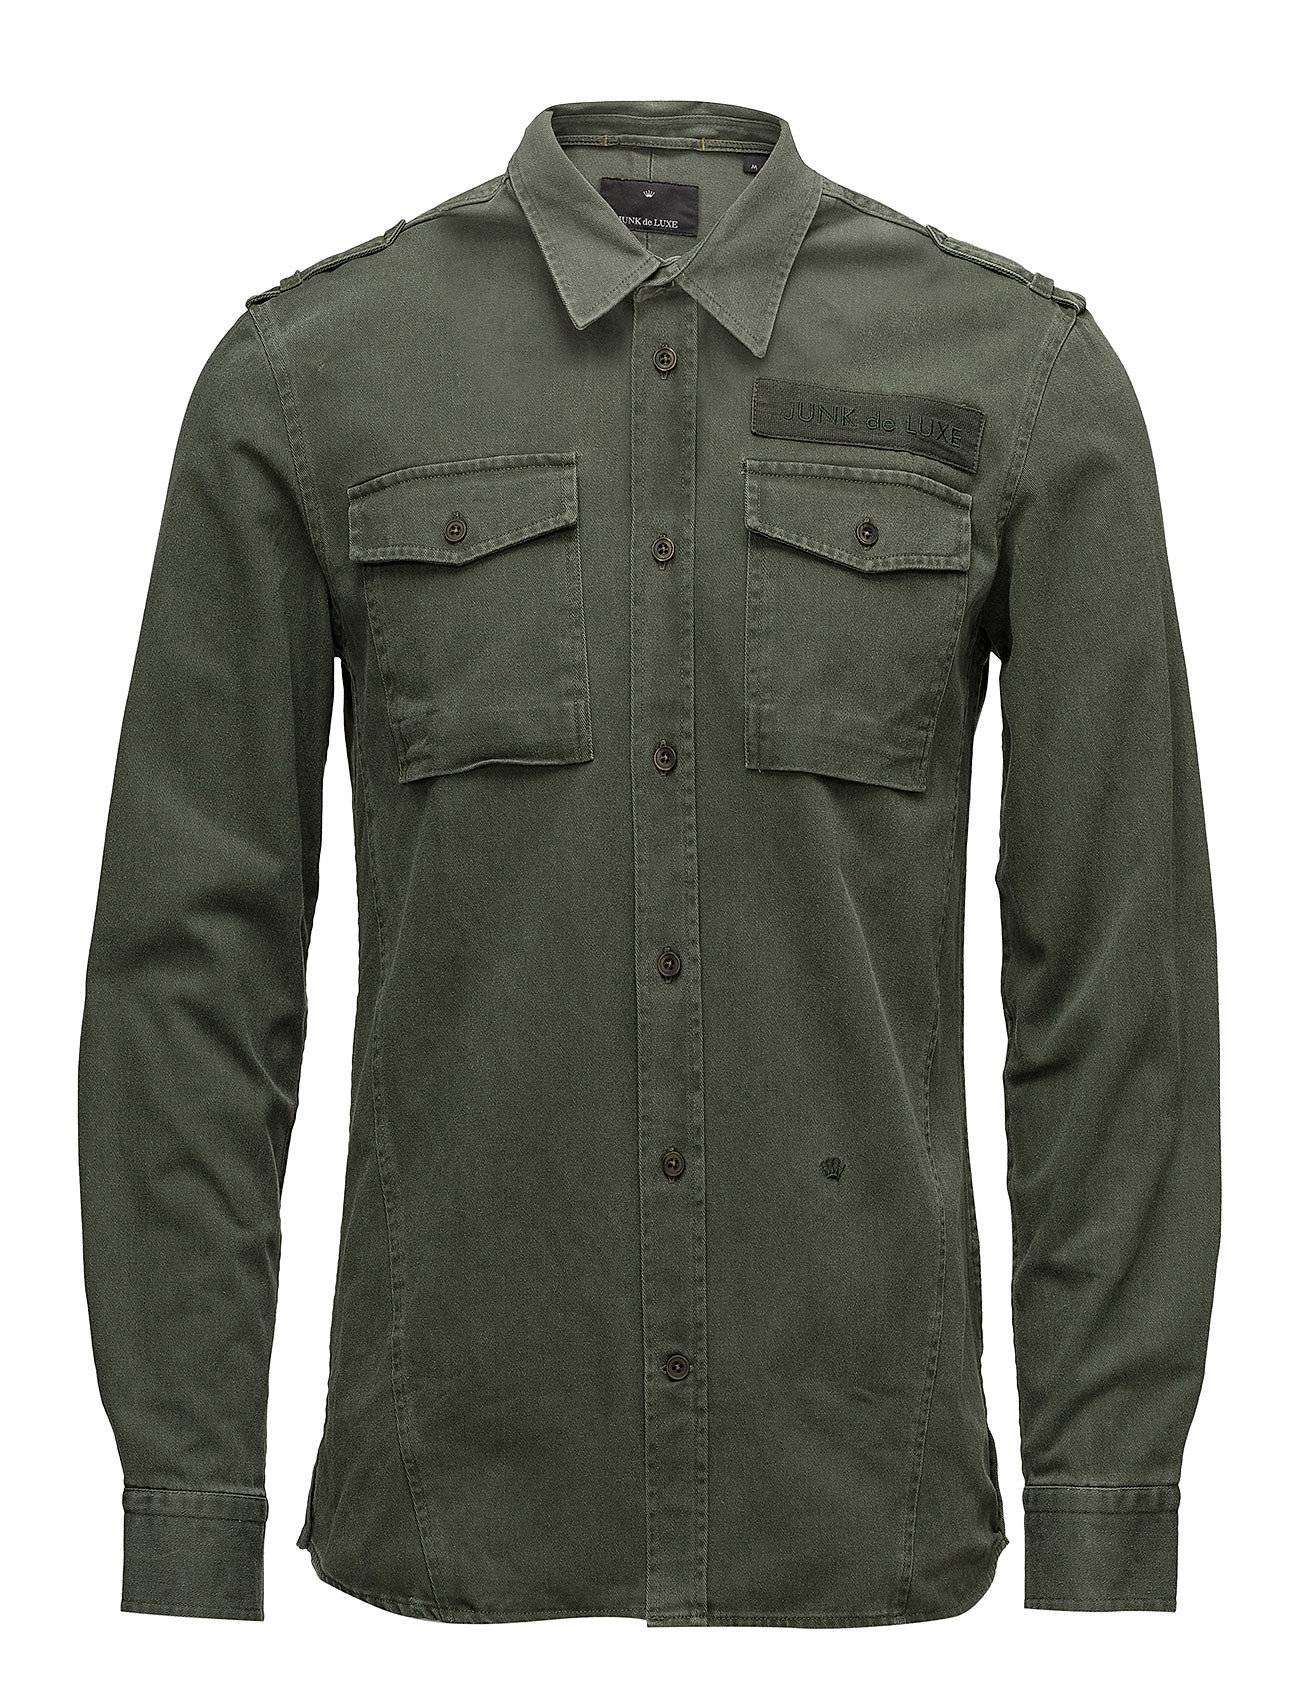 JUNK de LUXE Washed Military Shirt